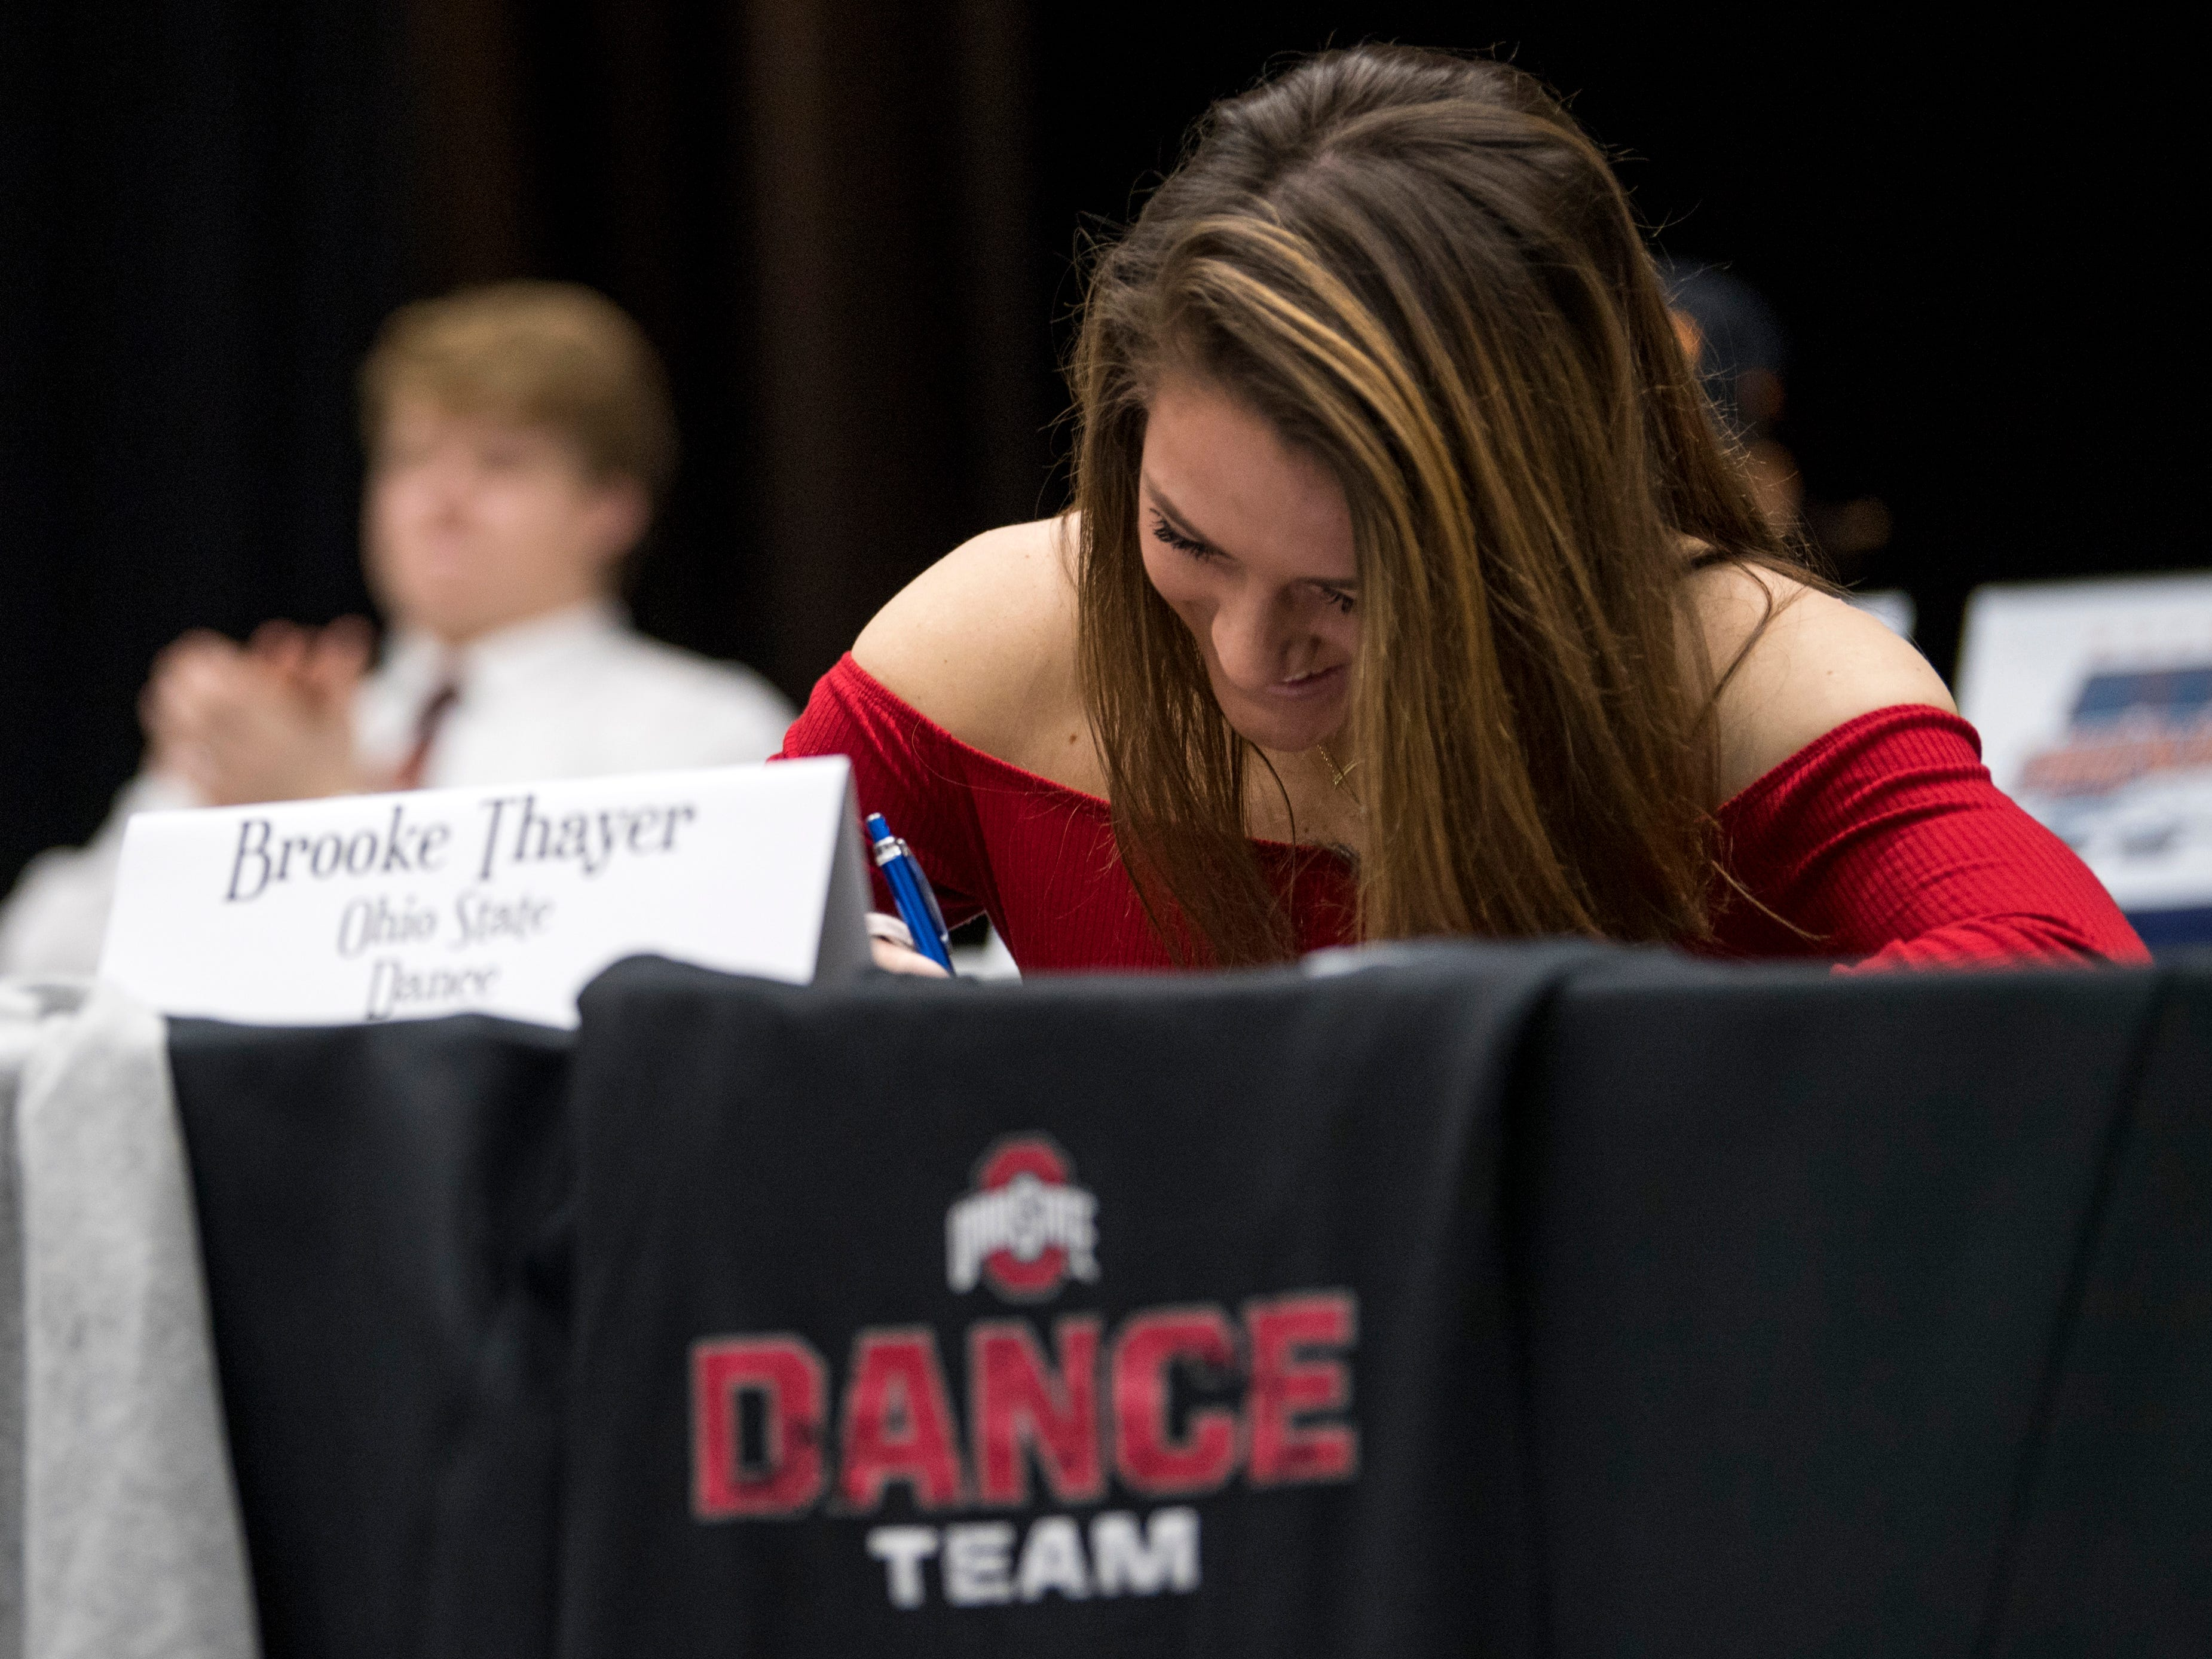 Farragut dancer Brooke Thayer signs with Ohio State University during a National Signing Day event at Farragut High's auditorium on Wednesday, February 6, 2019.